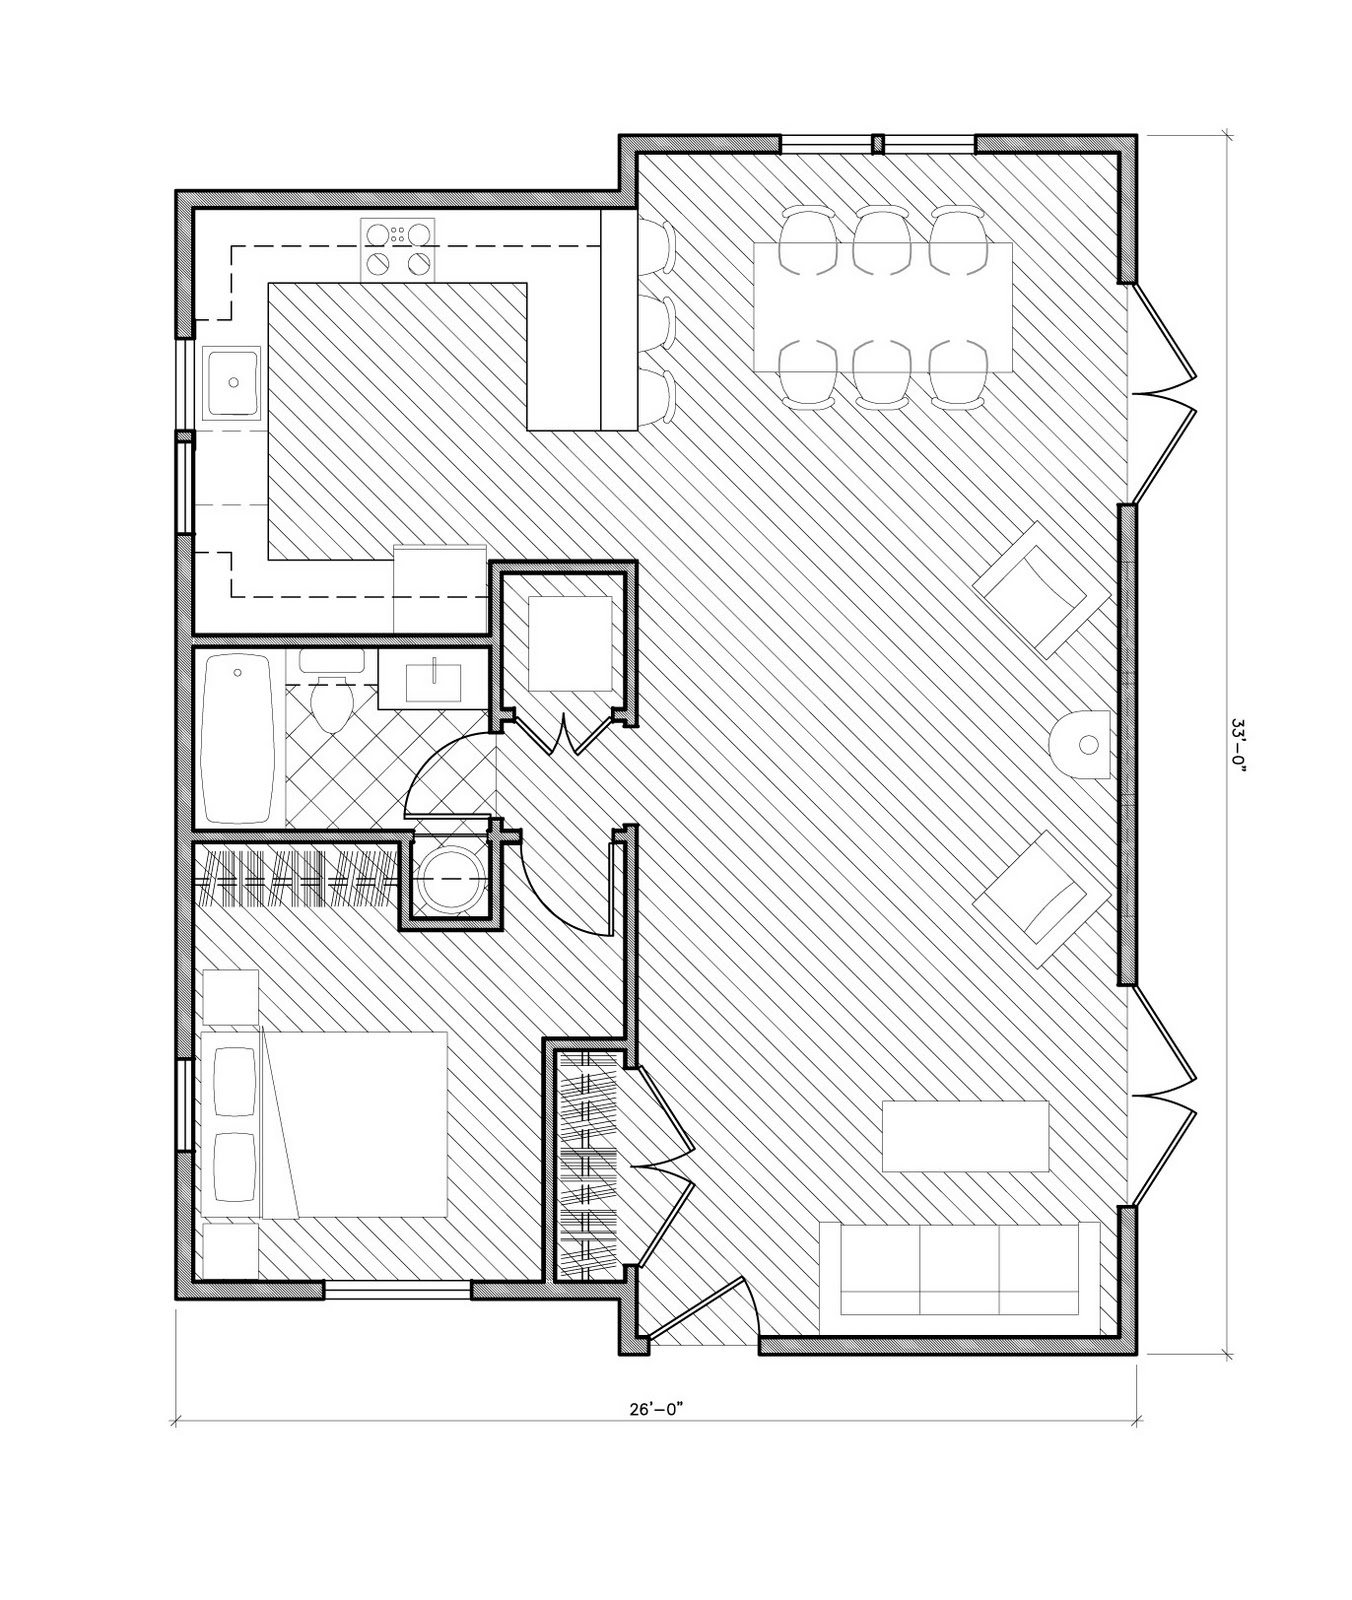 Mother in law cottage plans find house plans for Mother in law cottage plans